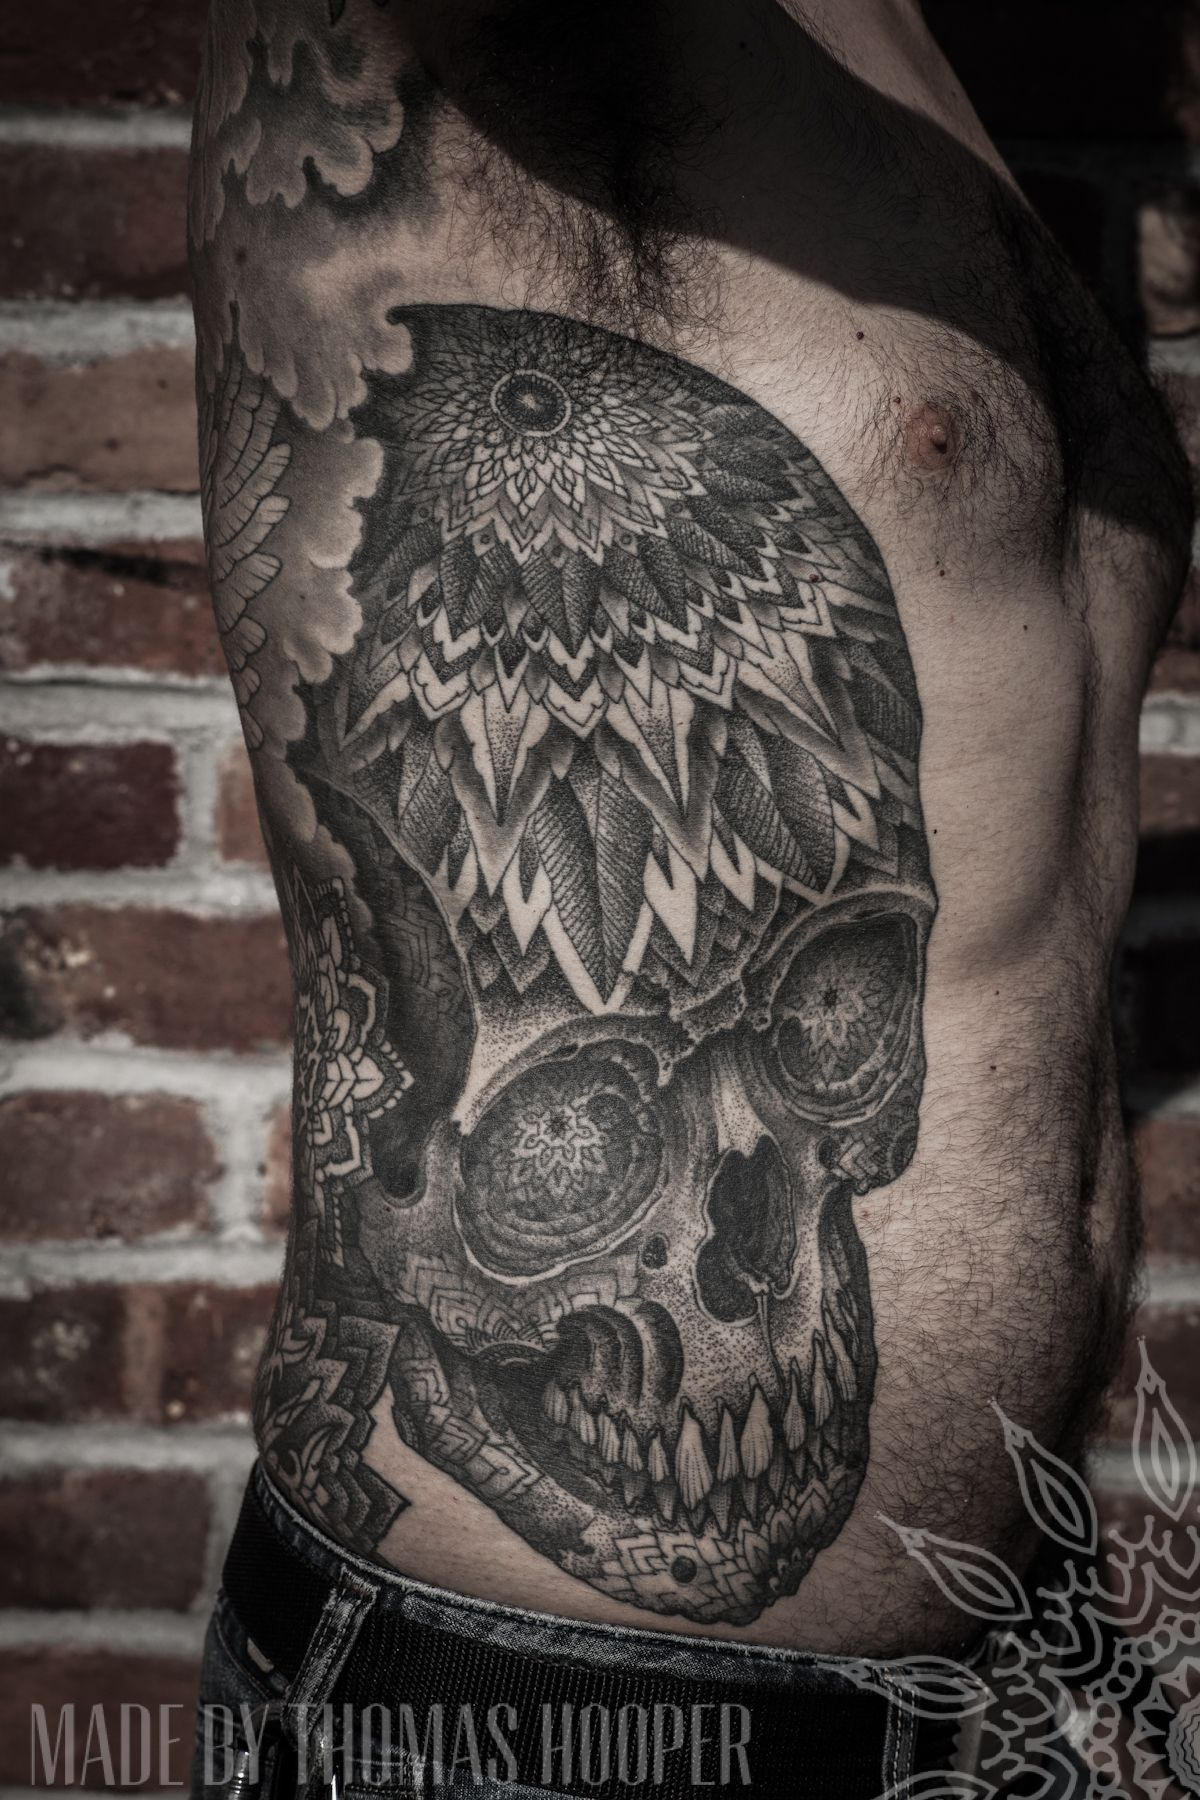 a003b51f9f947 Tattoo by Thomas Hooper. I really wanted to pin one of his full backpieces  but pinterest doesn't like butts I think. :(